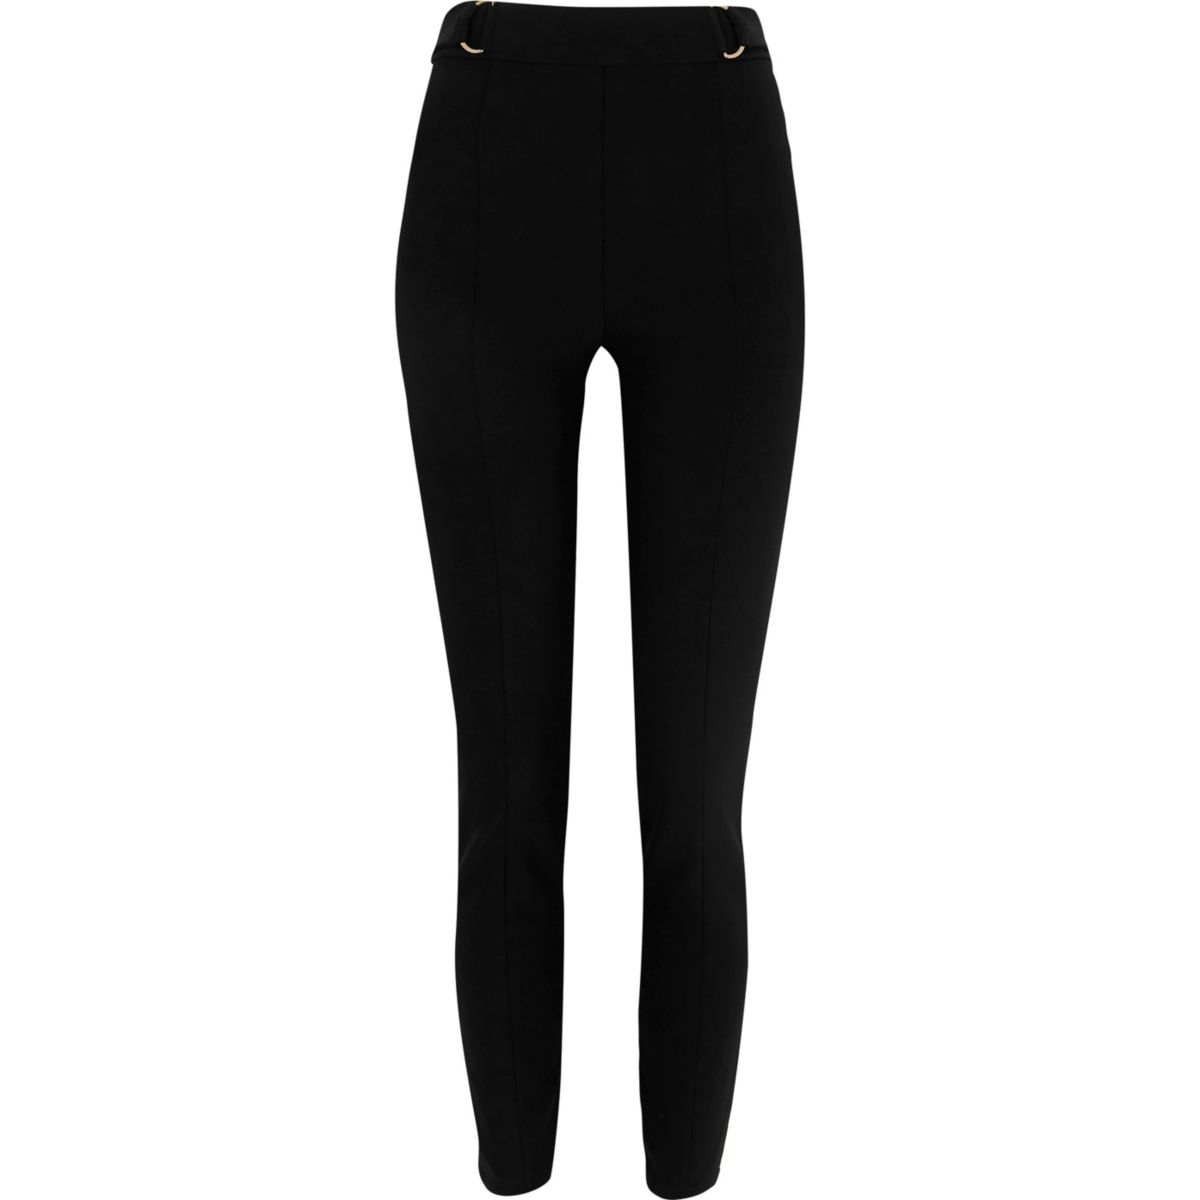 Black D-ring skinny high waisted trousers